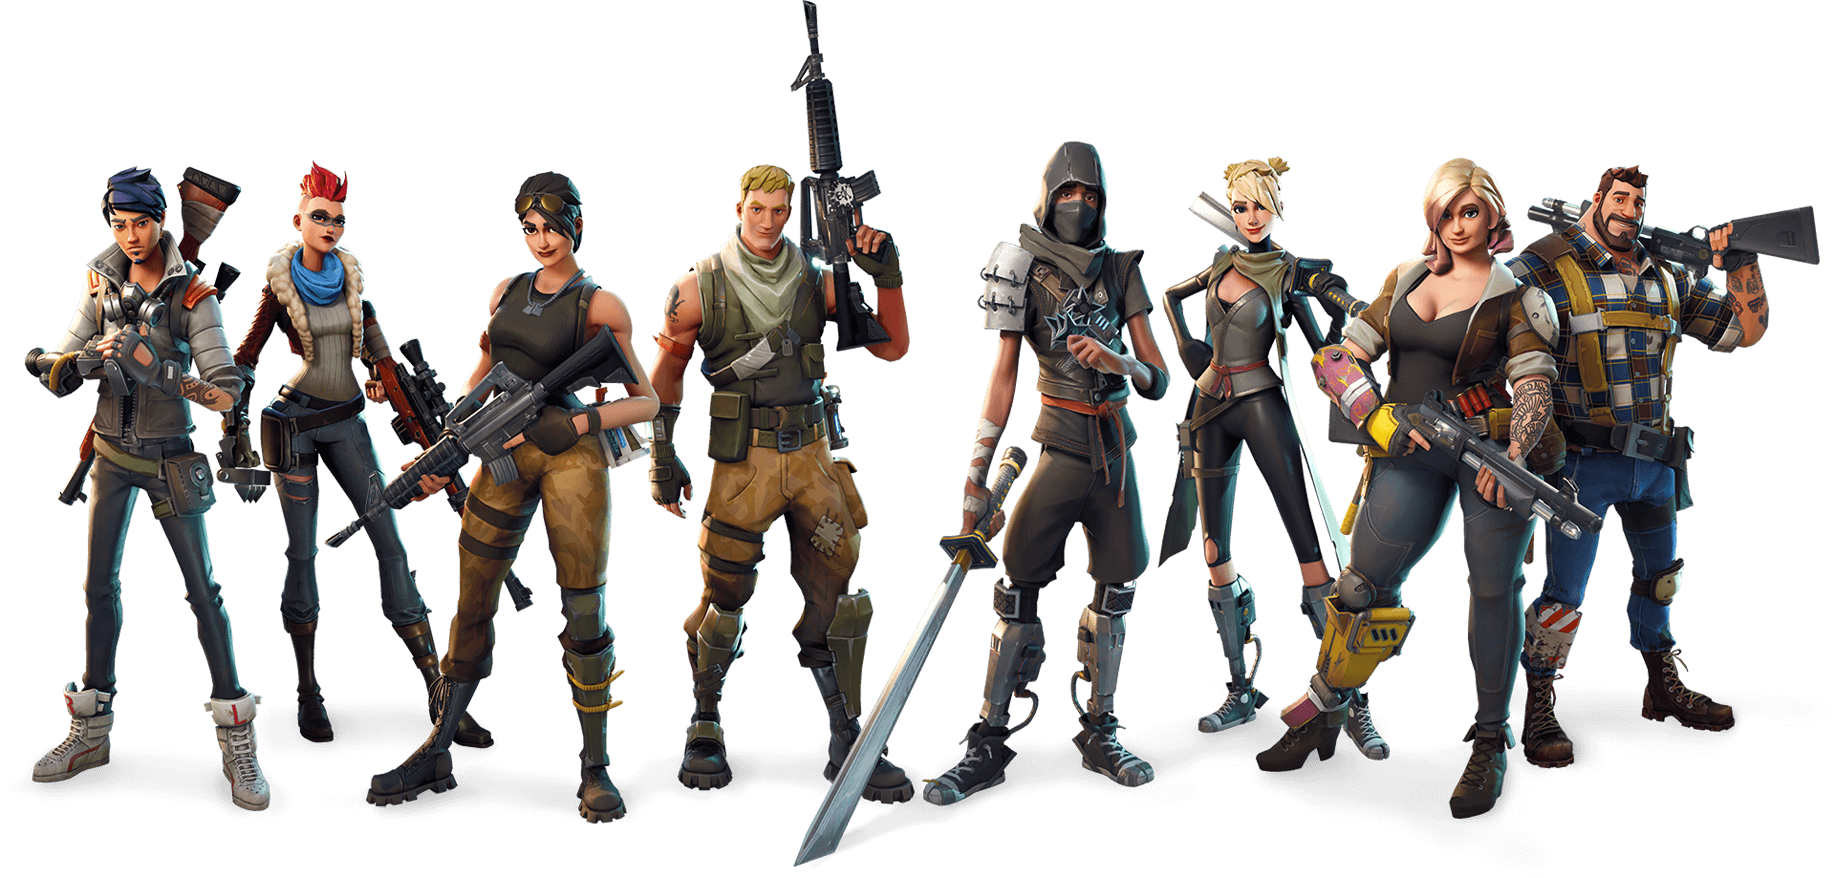 Download Fortnite Class Characters PNG Image for Free.